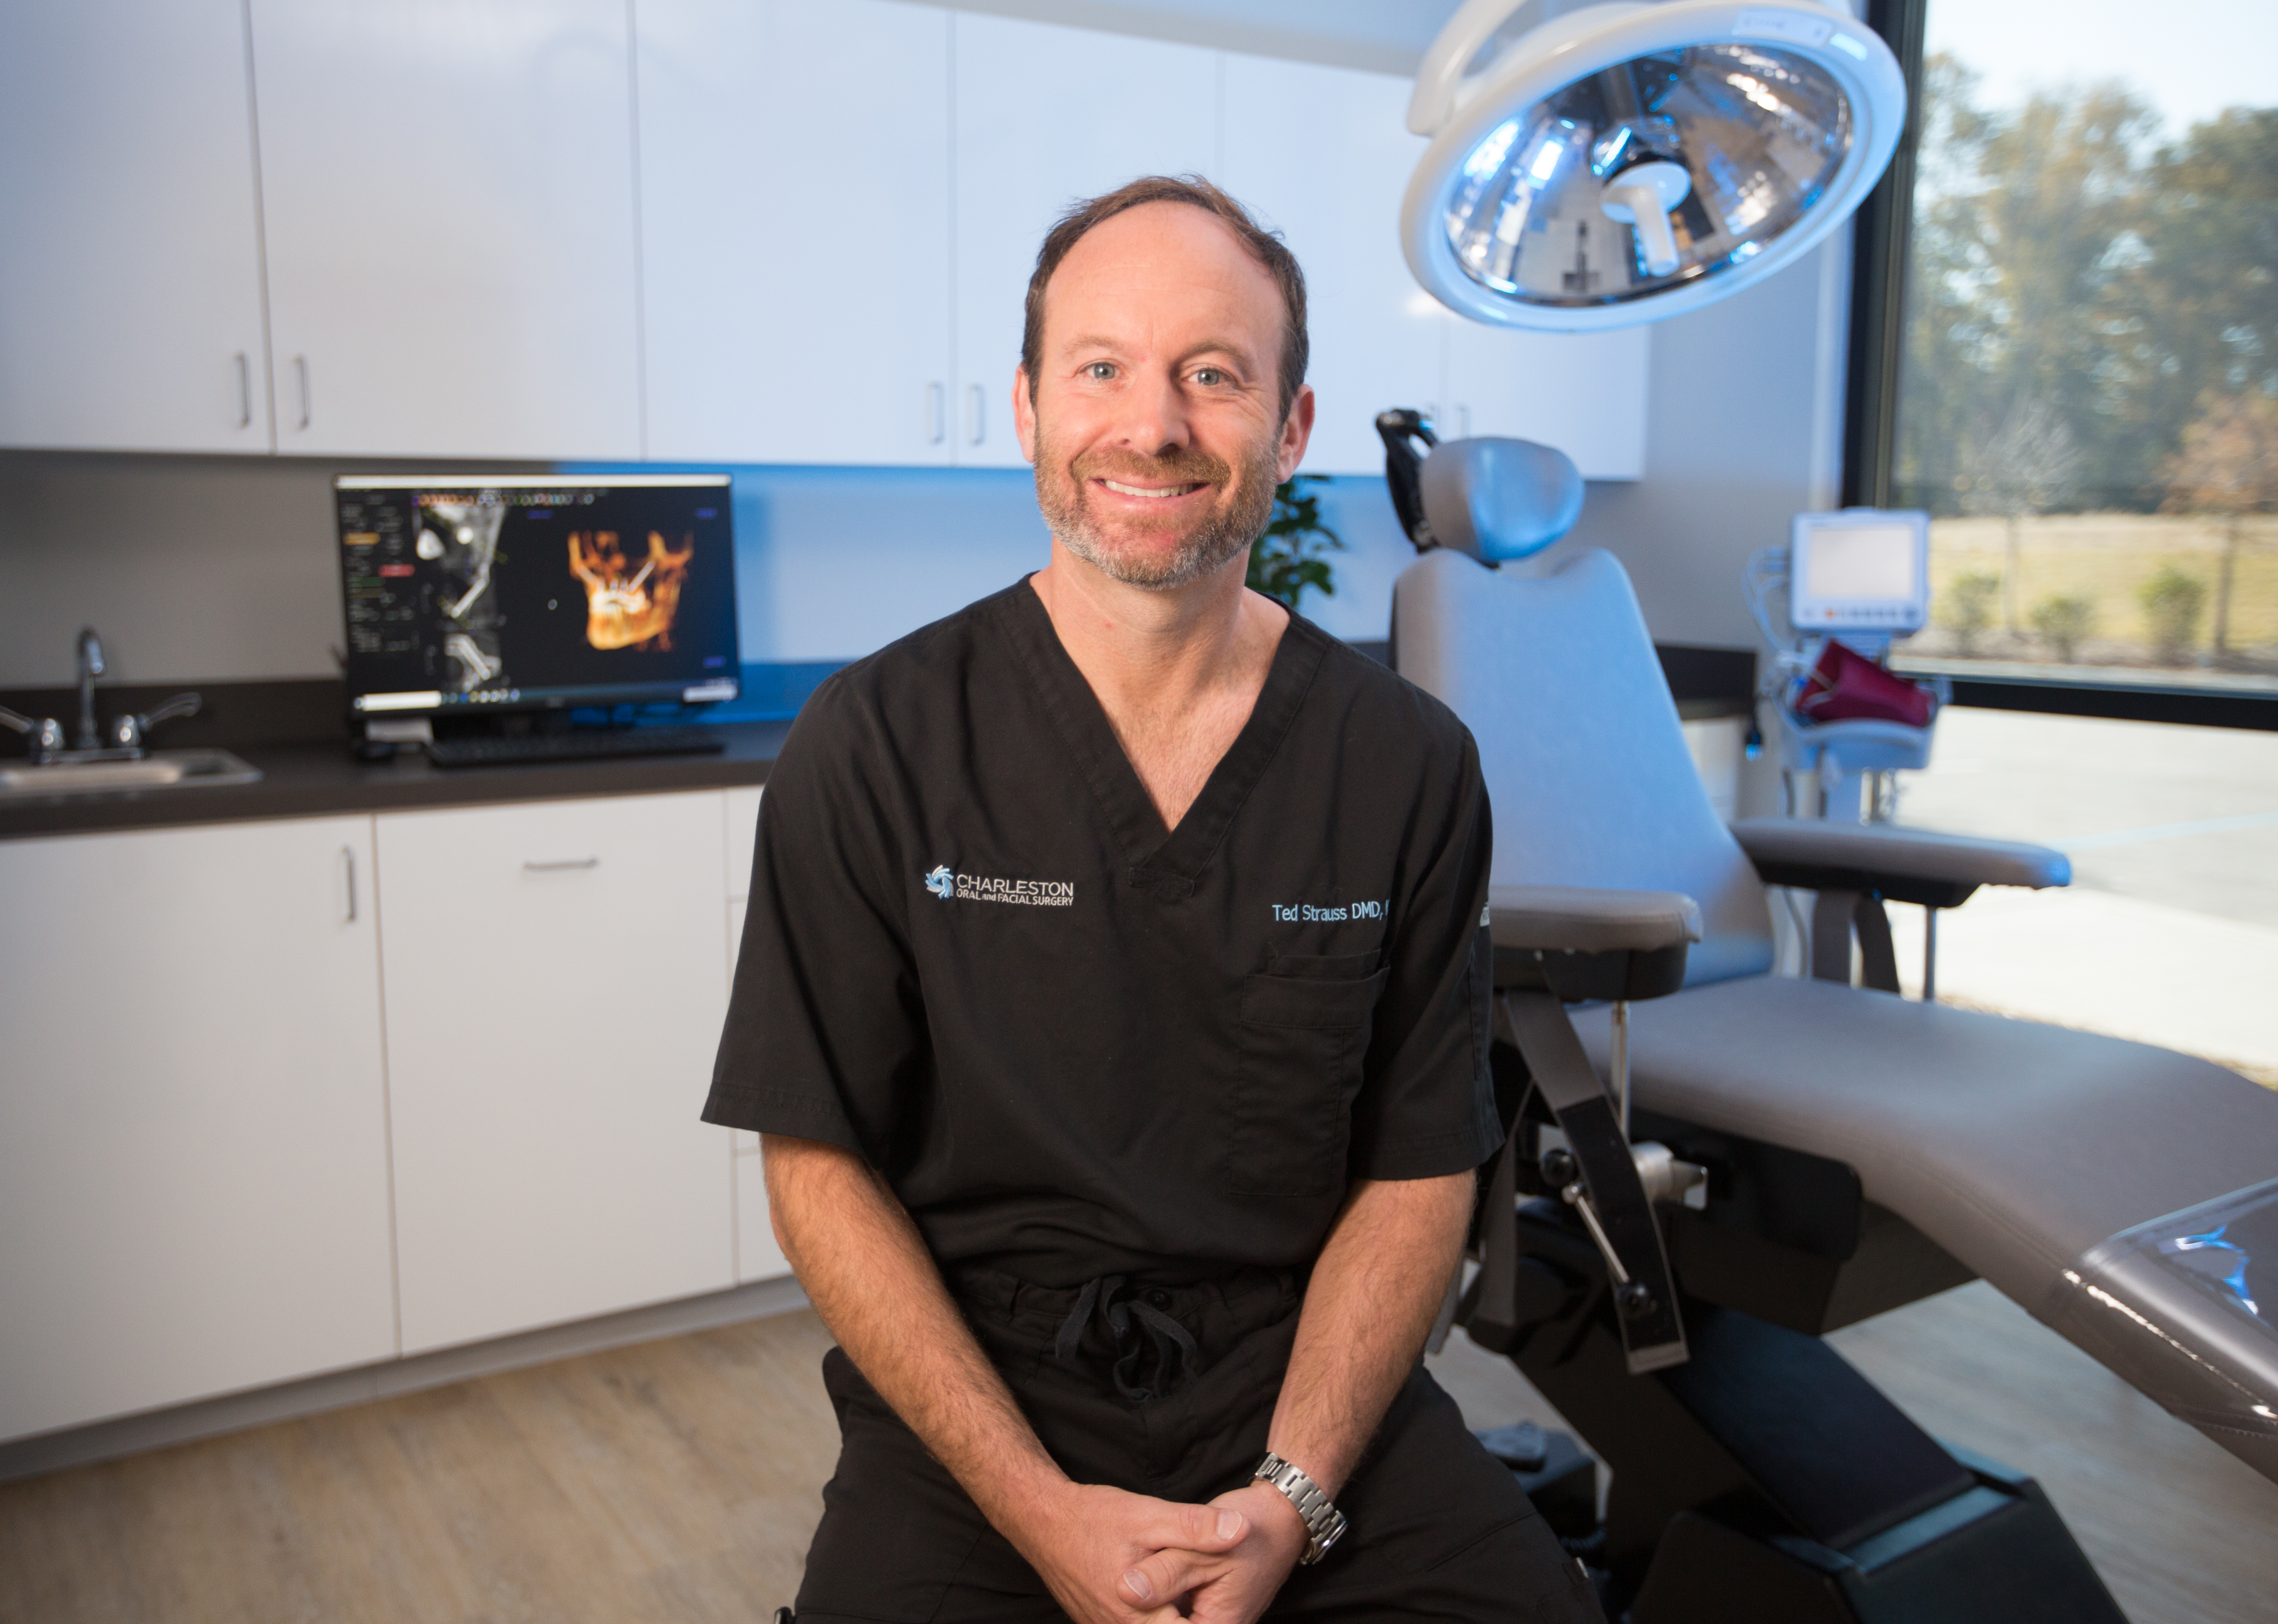 Dr. Edward Strauss, Oral Surgeon